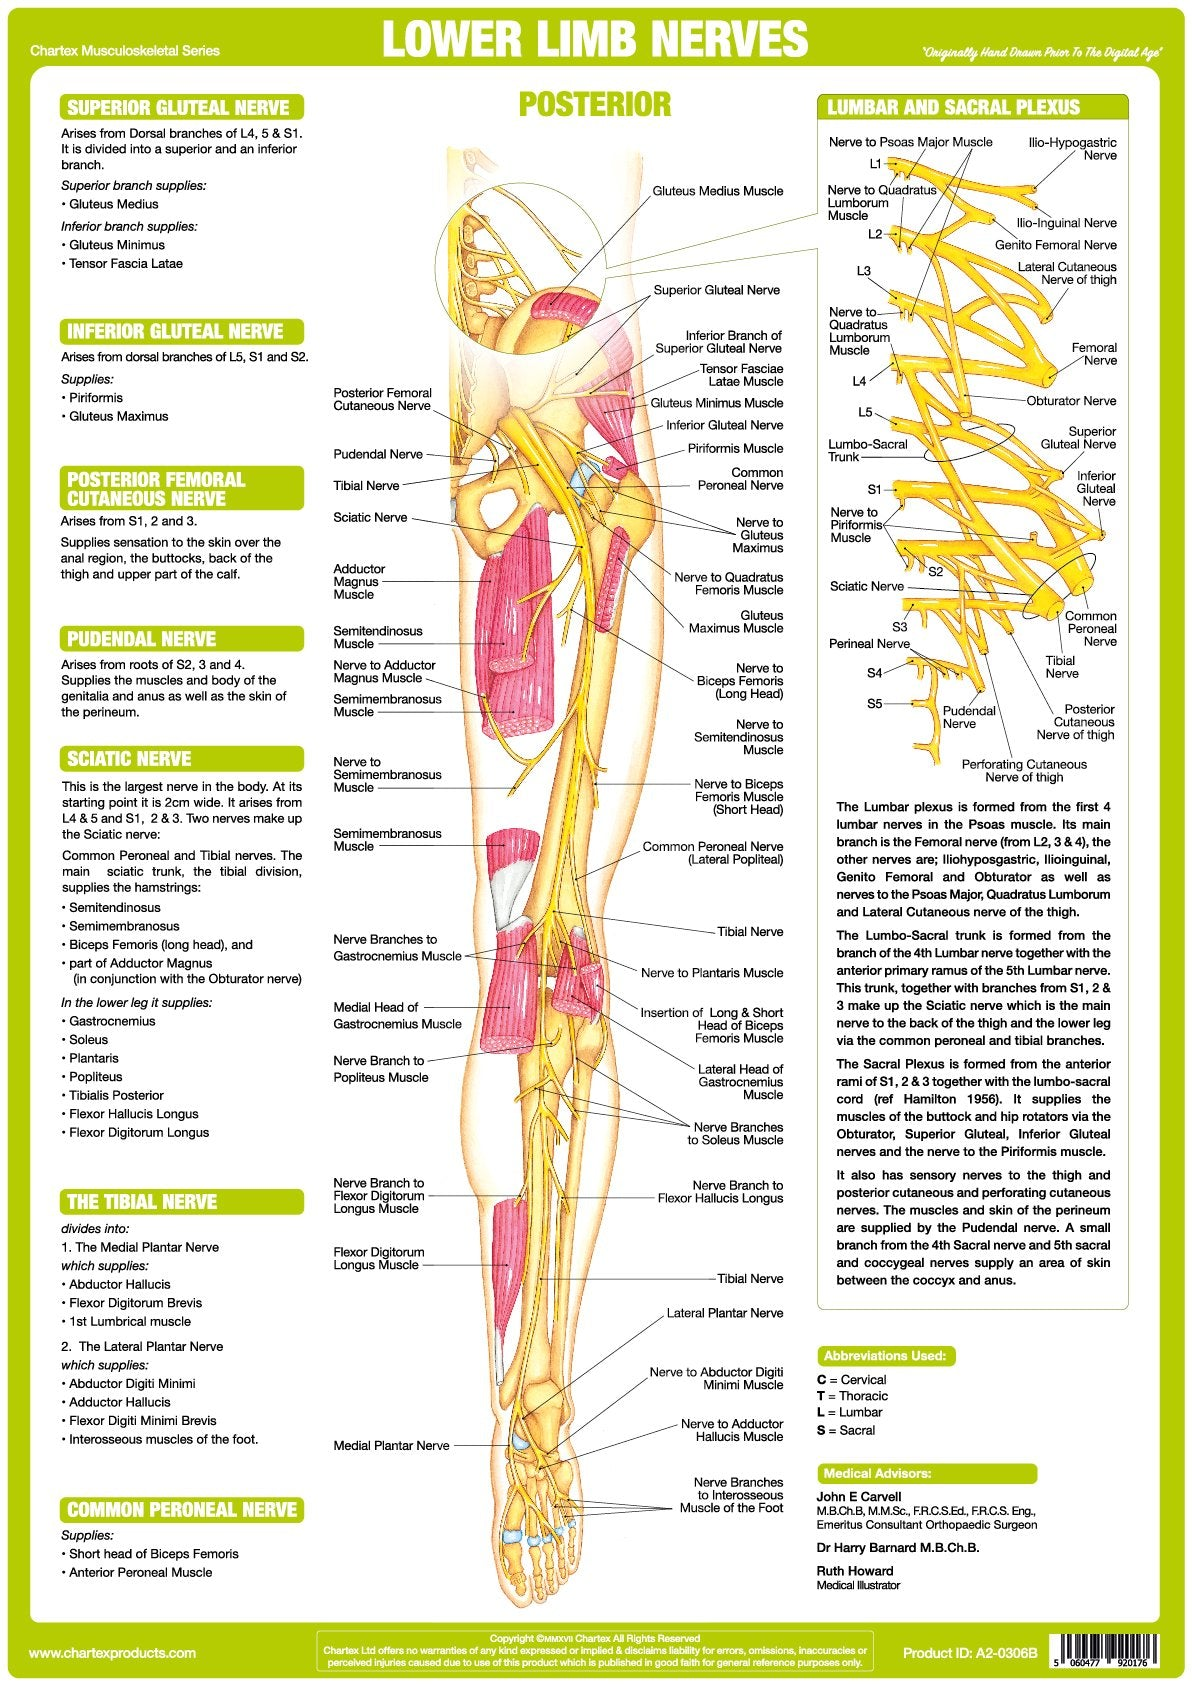 Lower Limb Nerve Anatomy Chart Posterior Chartex Ltd